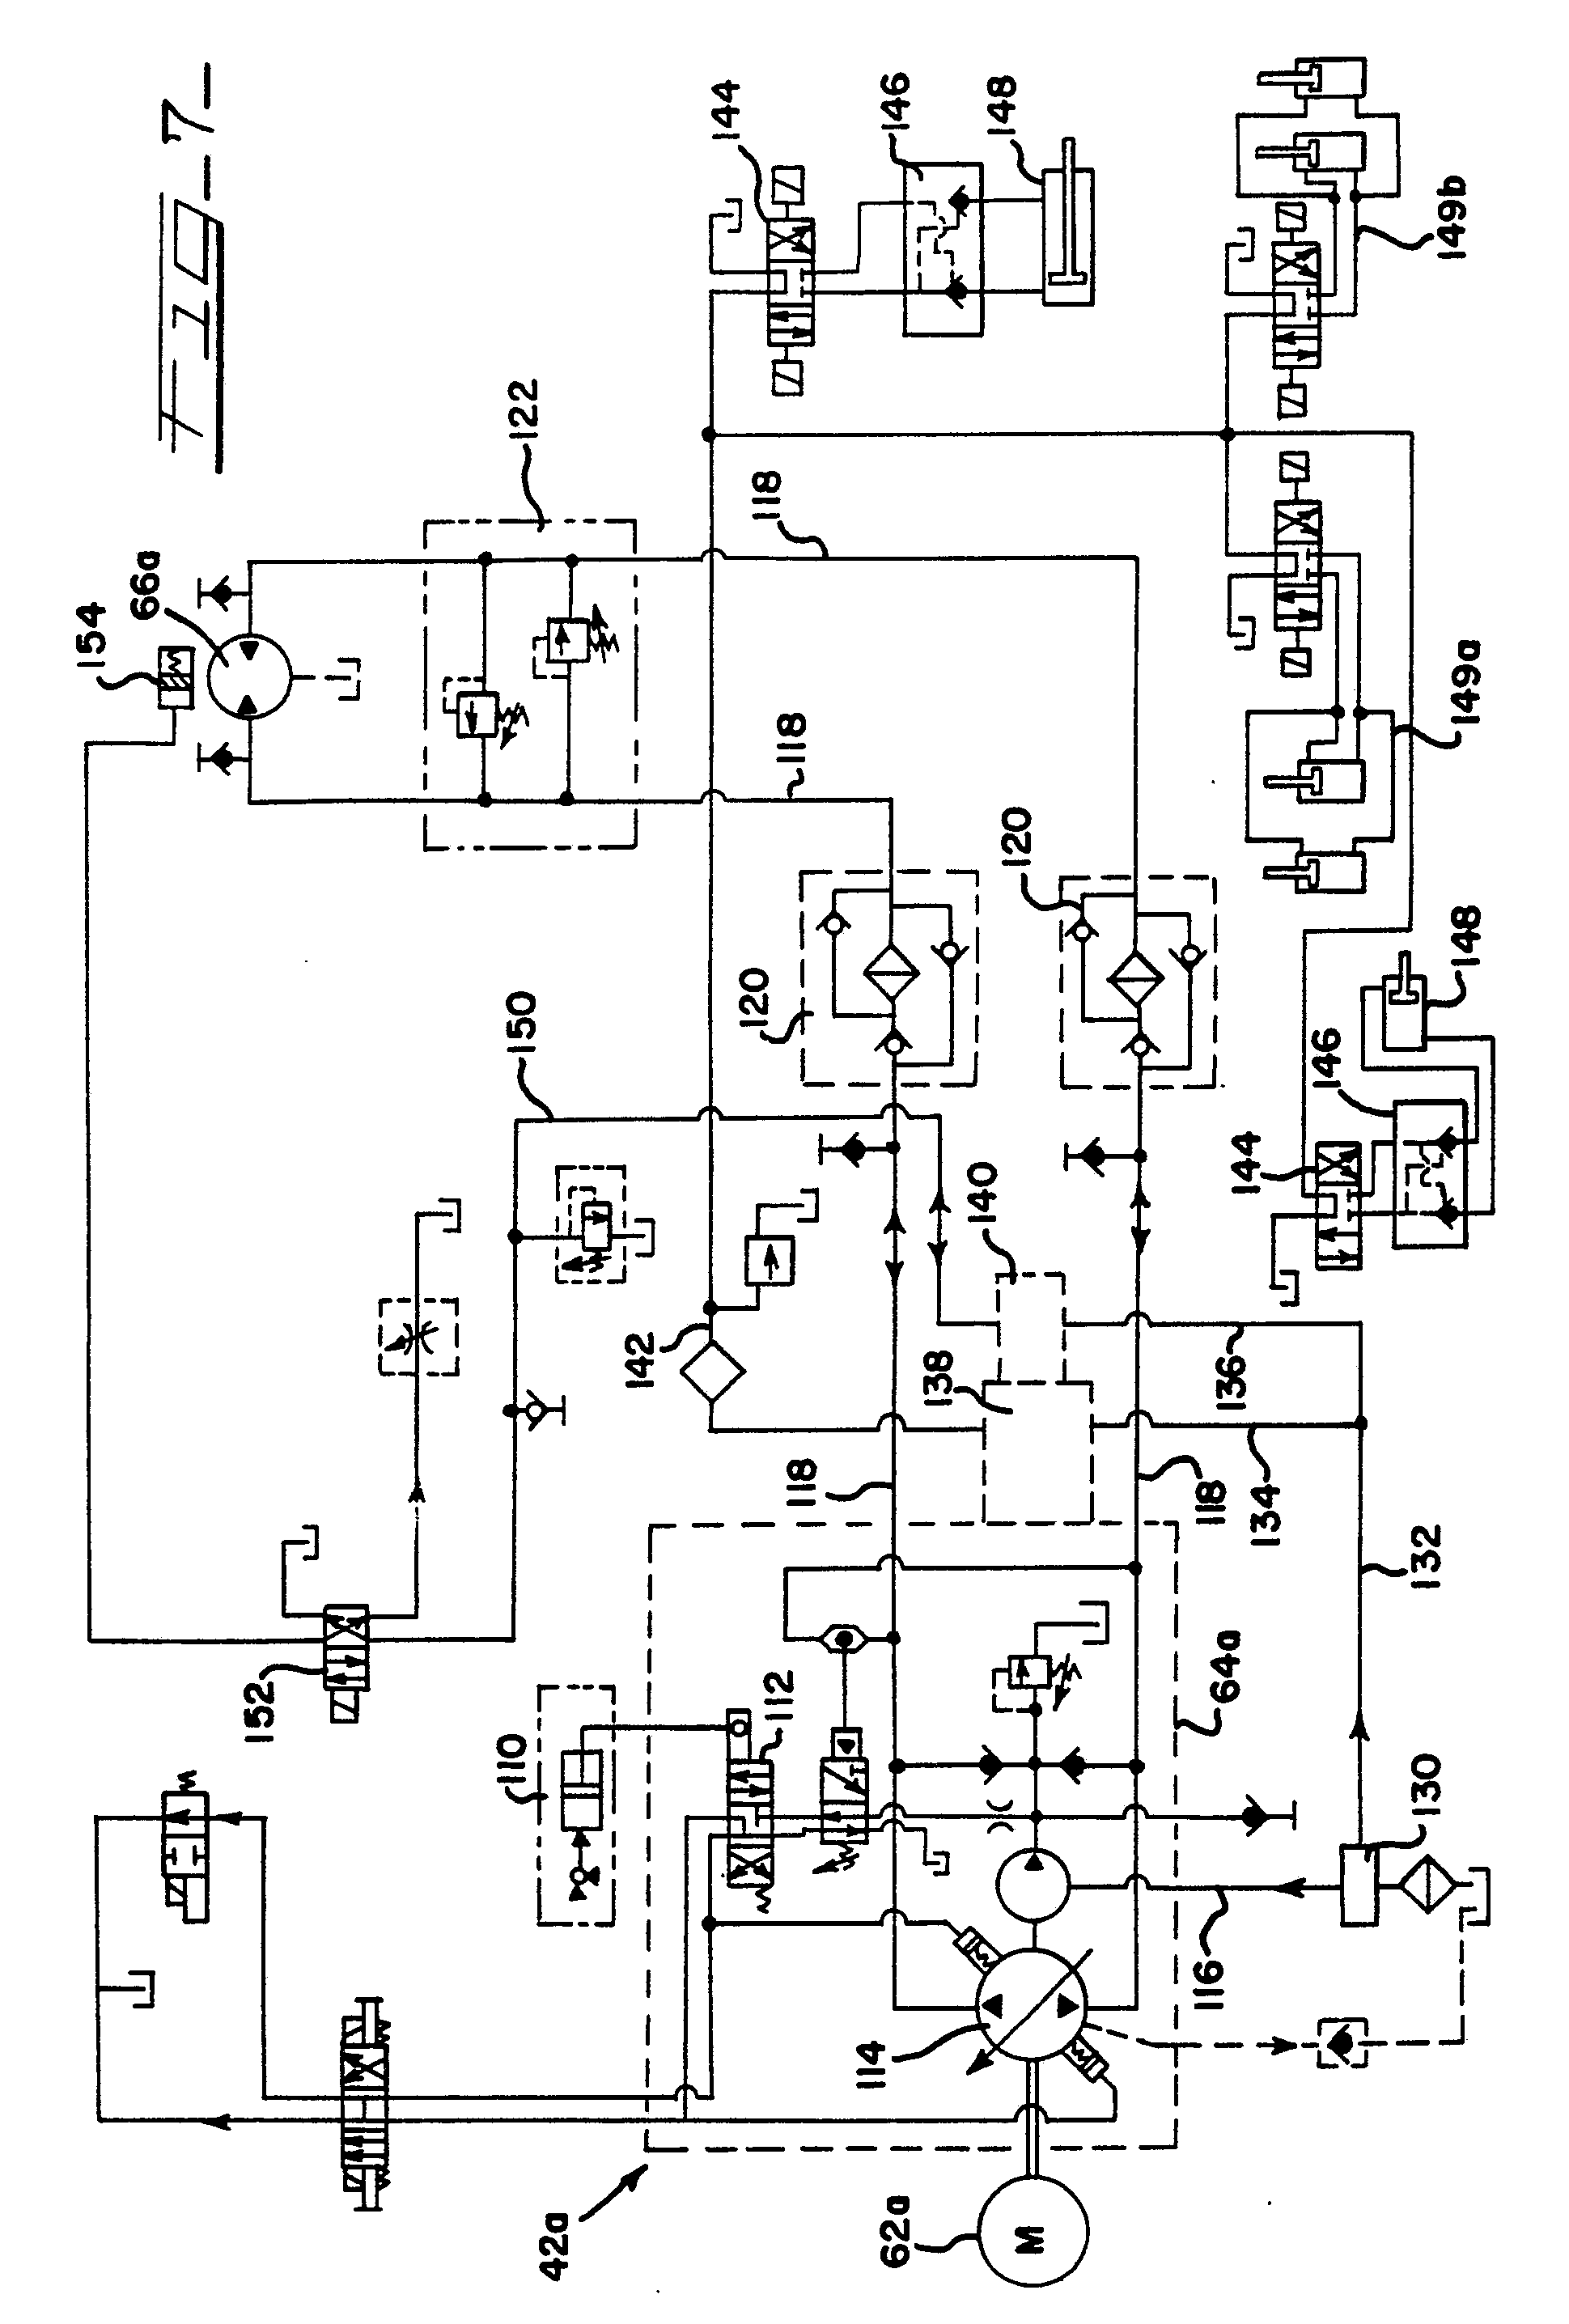 Henan Brand Ton Mag ic Overhead Crane 1222952133 further Lg Rp21fd10 Schematic Diagram Used Ics in addition Schematics h as well Electrical Plans And Panel Layouts further Moto Ac. on electrical wiring drawings